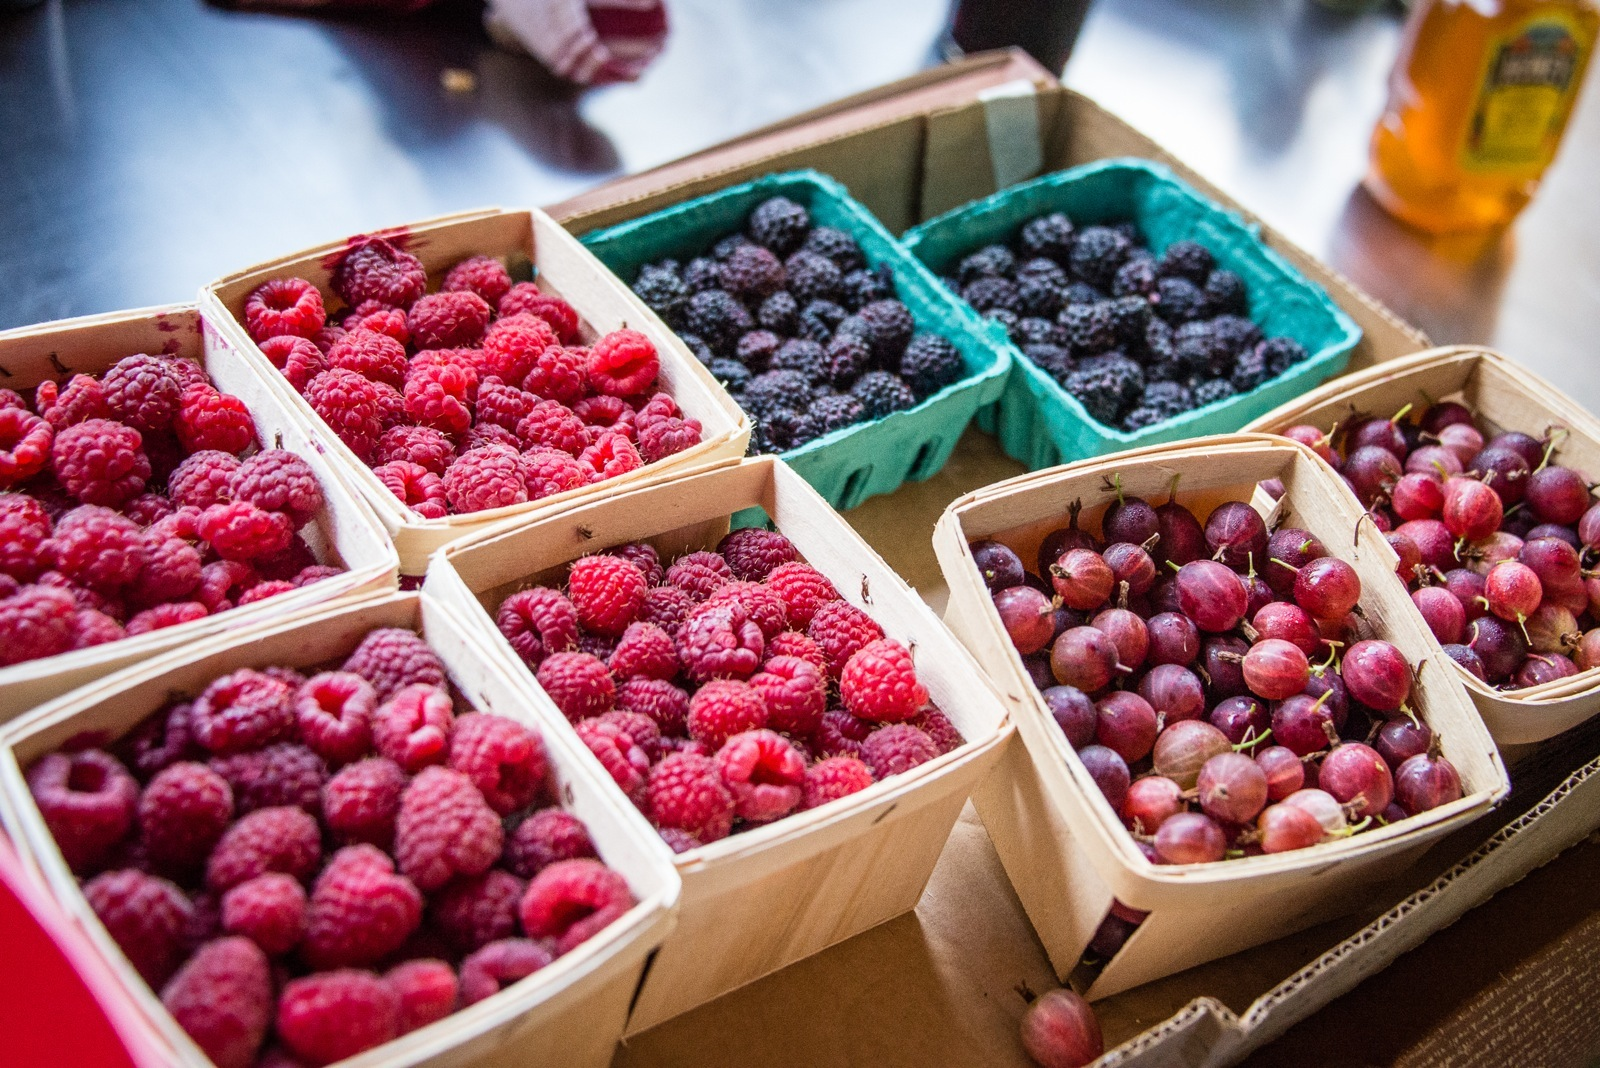 Eight boxes of fresh raspberries and blueberries.